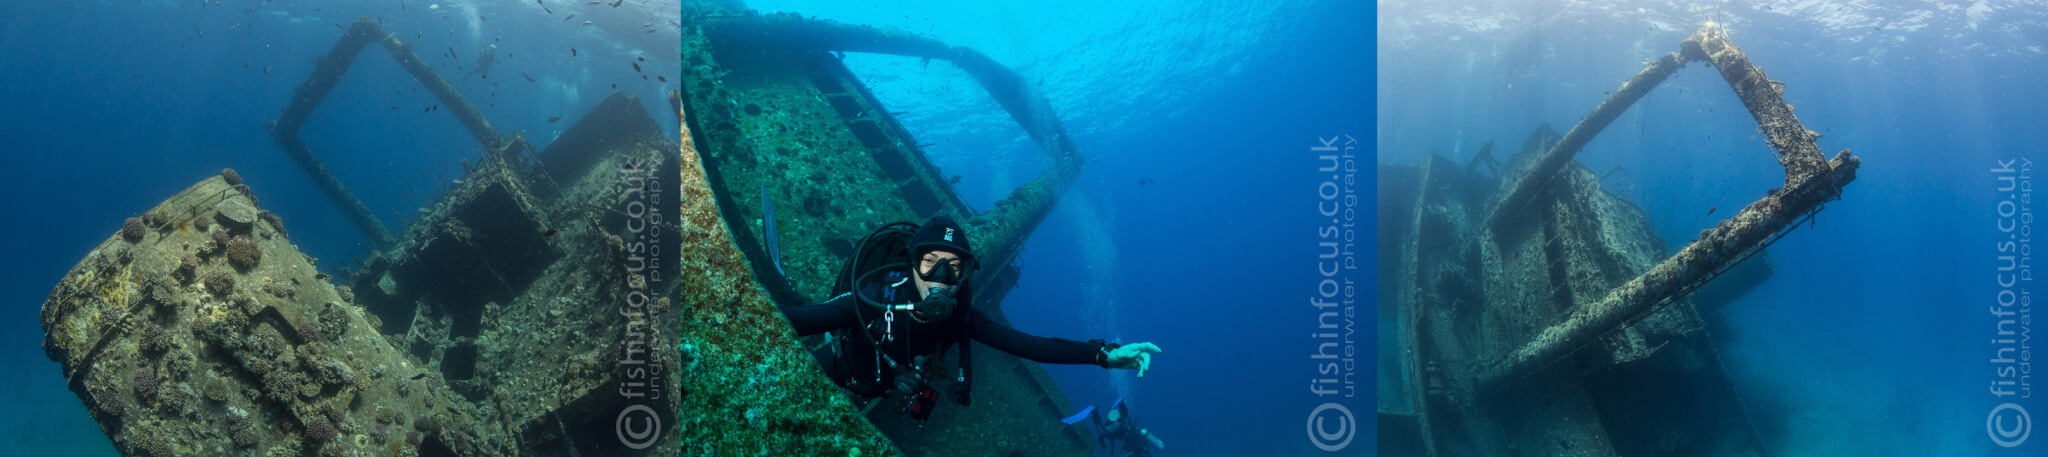 Scuba Travel, Giannis D, Red Sea, Egypt, Wreck